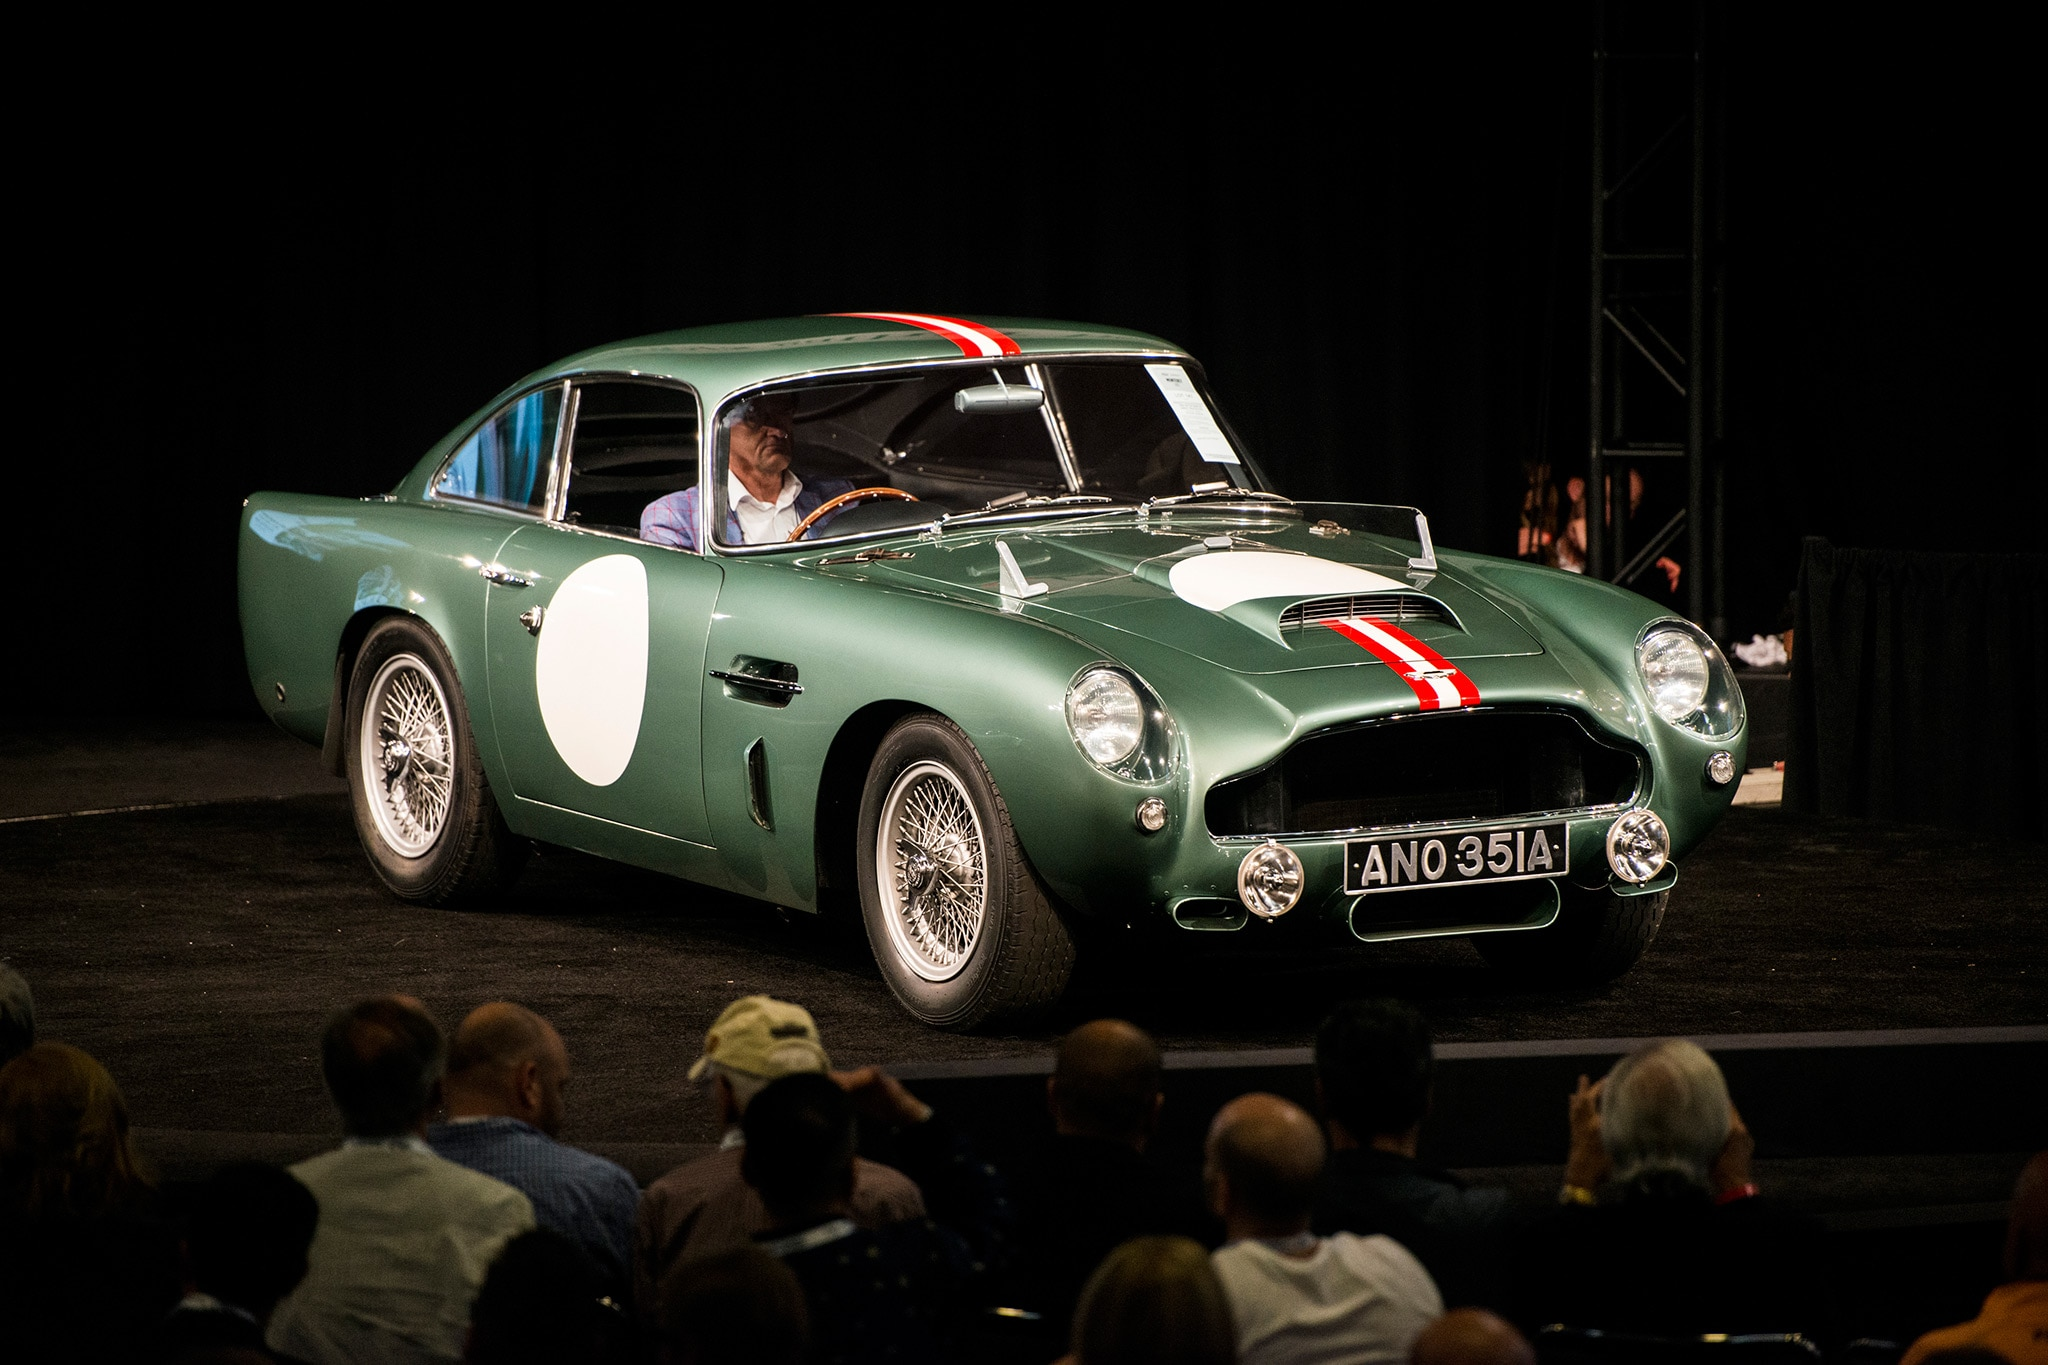 1956 Aston Martin Dbr1 1 Sold For Record 22 55 Million Caps Rm Sotheby S 2017 Monterey Sale